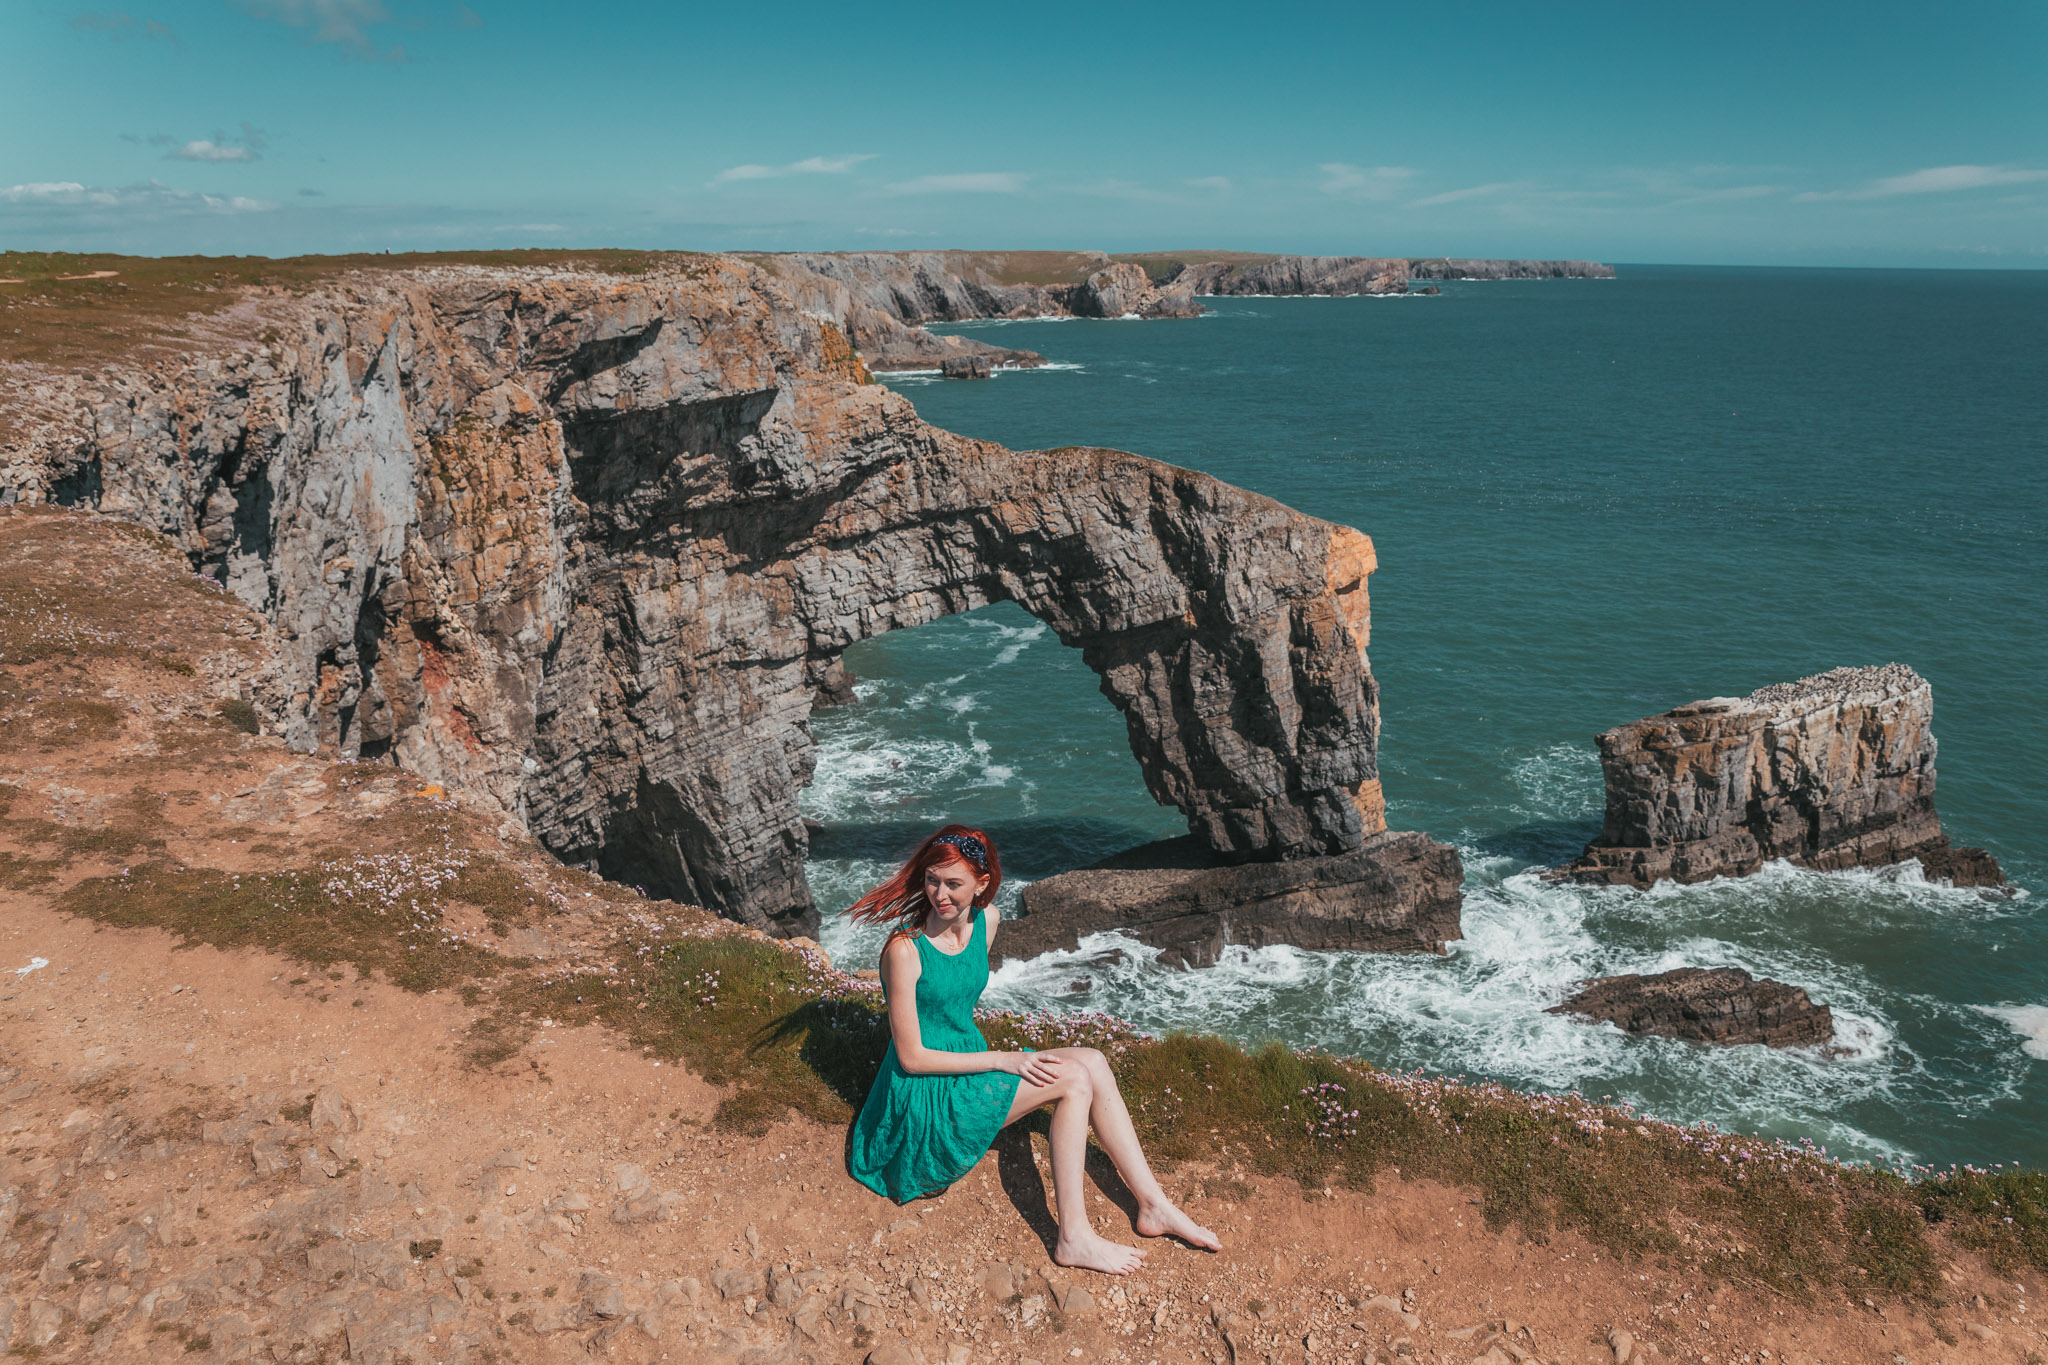 Green Bridge of Wales natural stone arch // The Most Beautiful Places to Visit in Wales // #readysetjetset #wales #uk #welsh #travel #photospots #blogpost